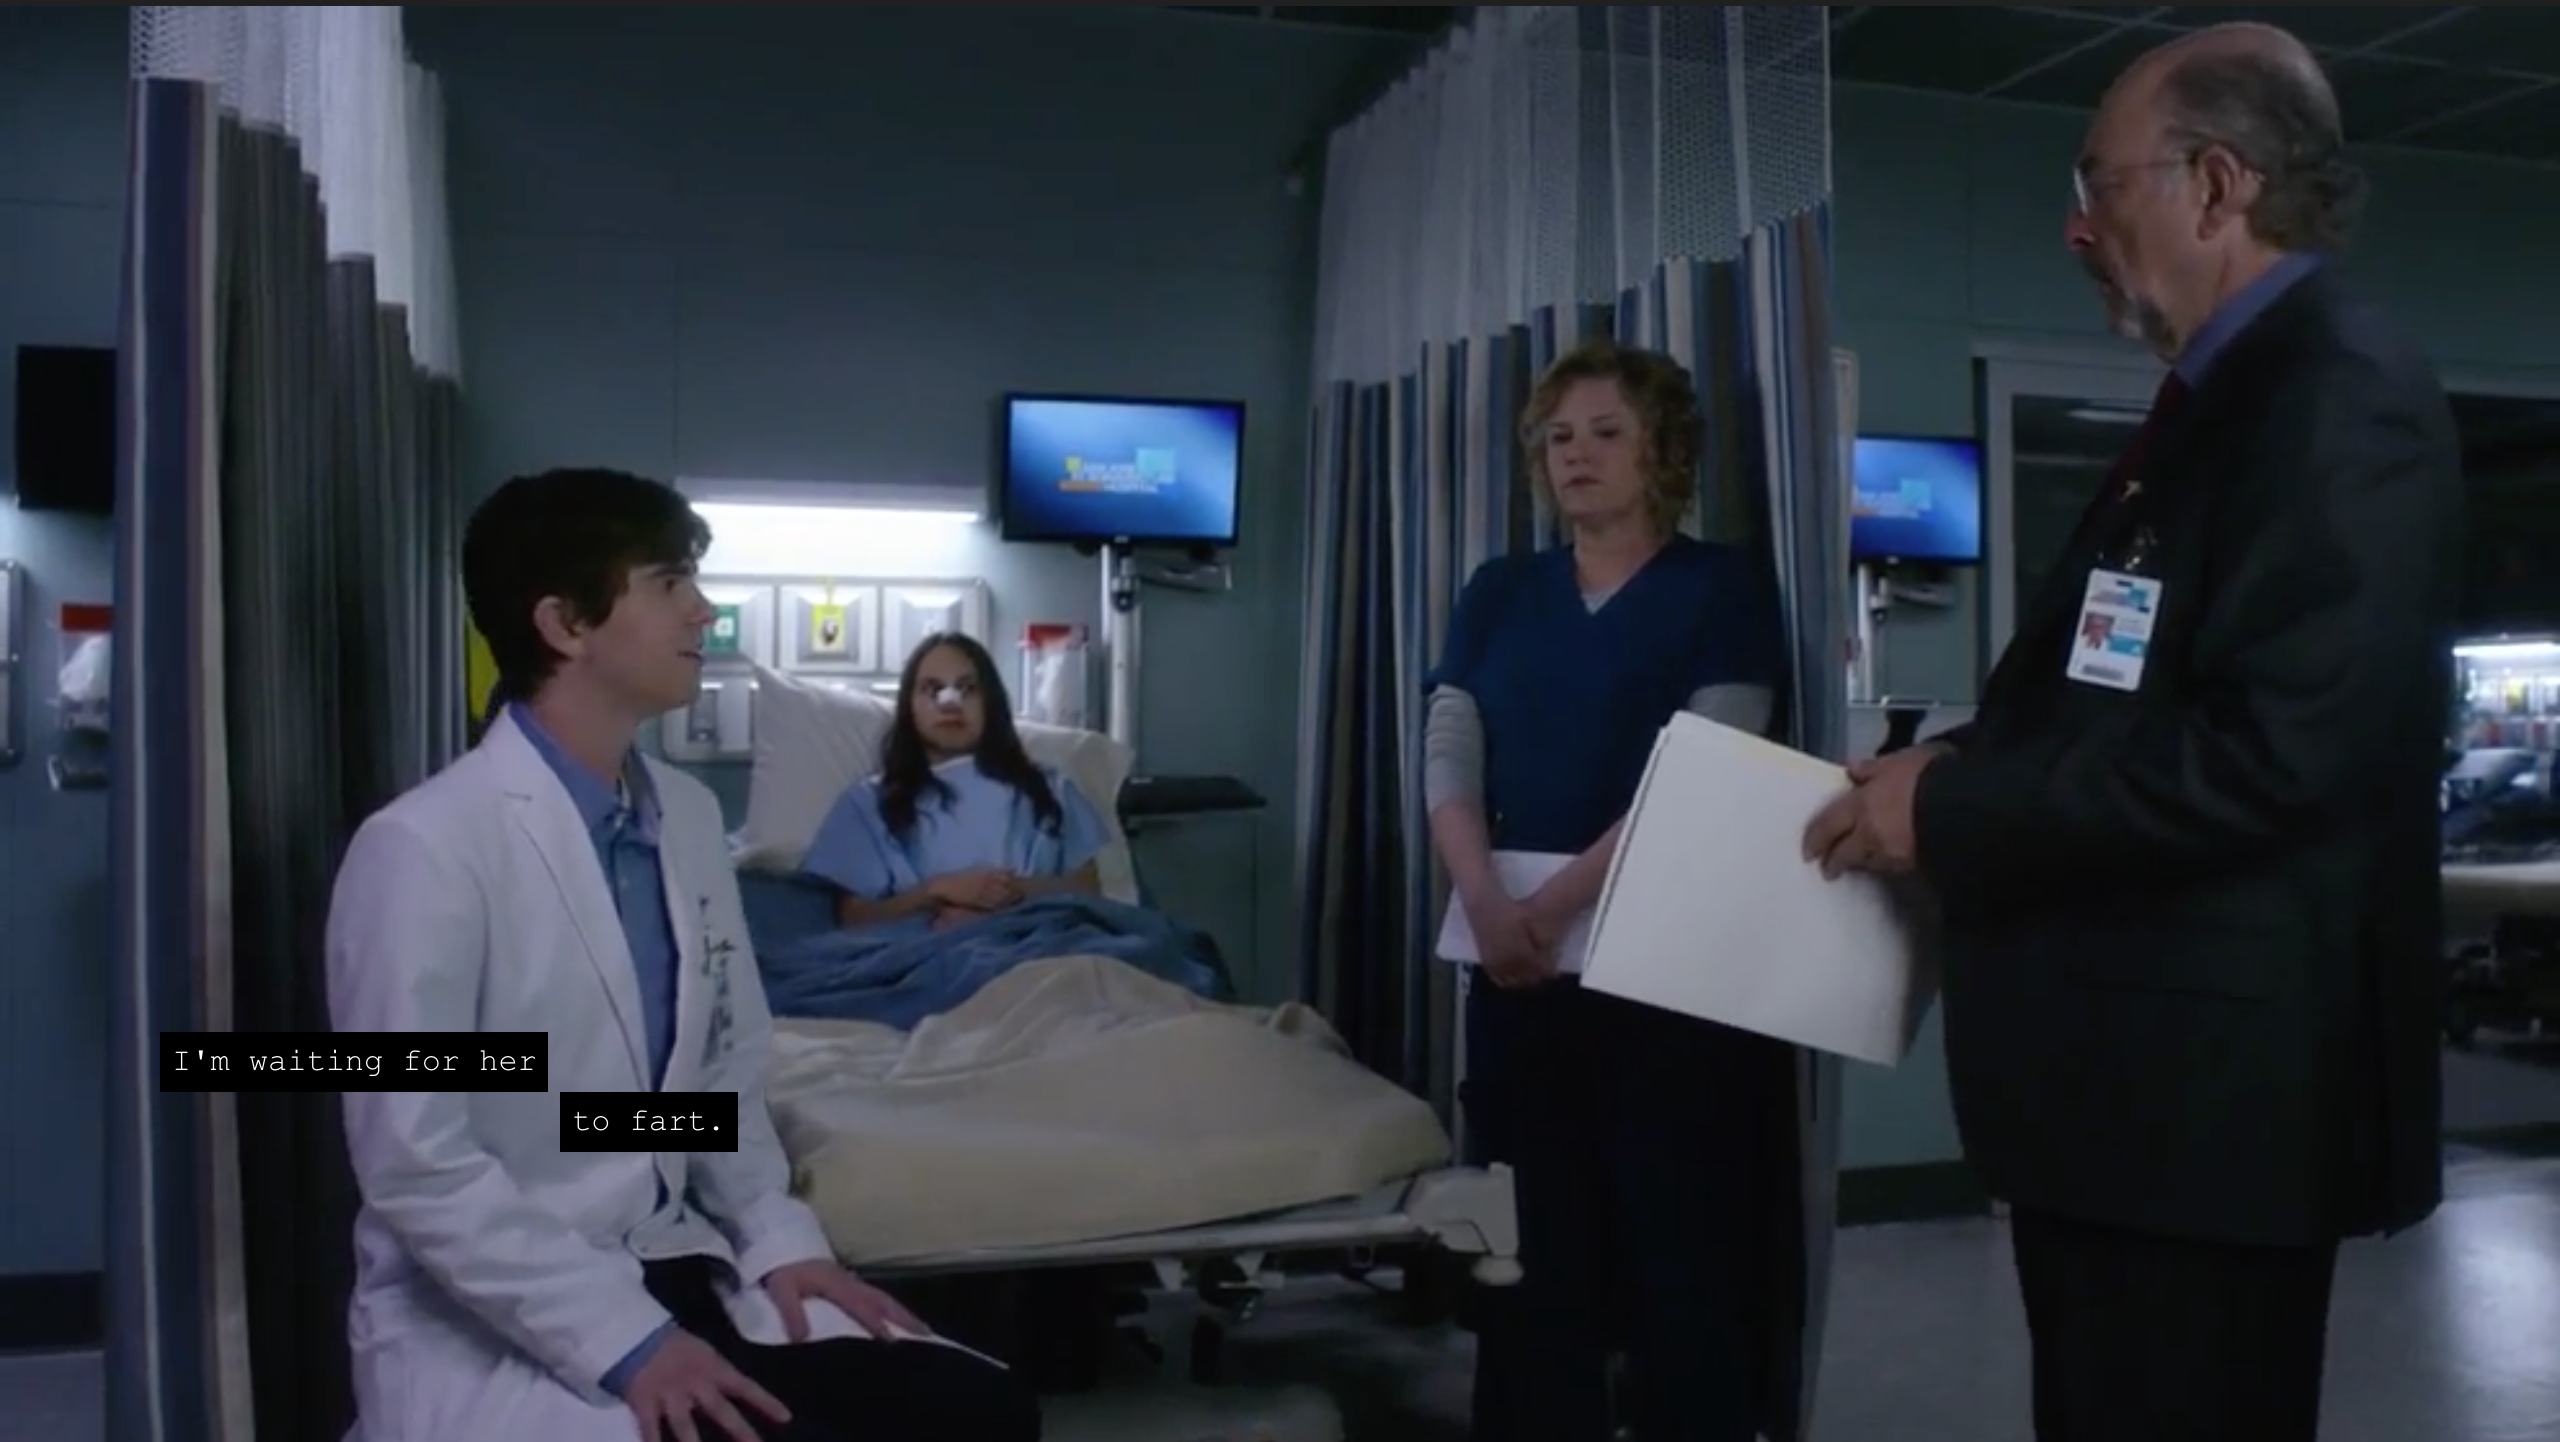 51 questions about the good doctor the ringer shaun sitting at a patients bedside saying im waiting for her to biocorpaavc